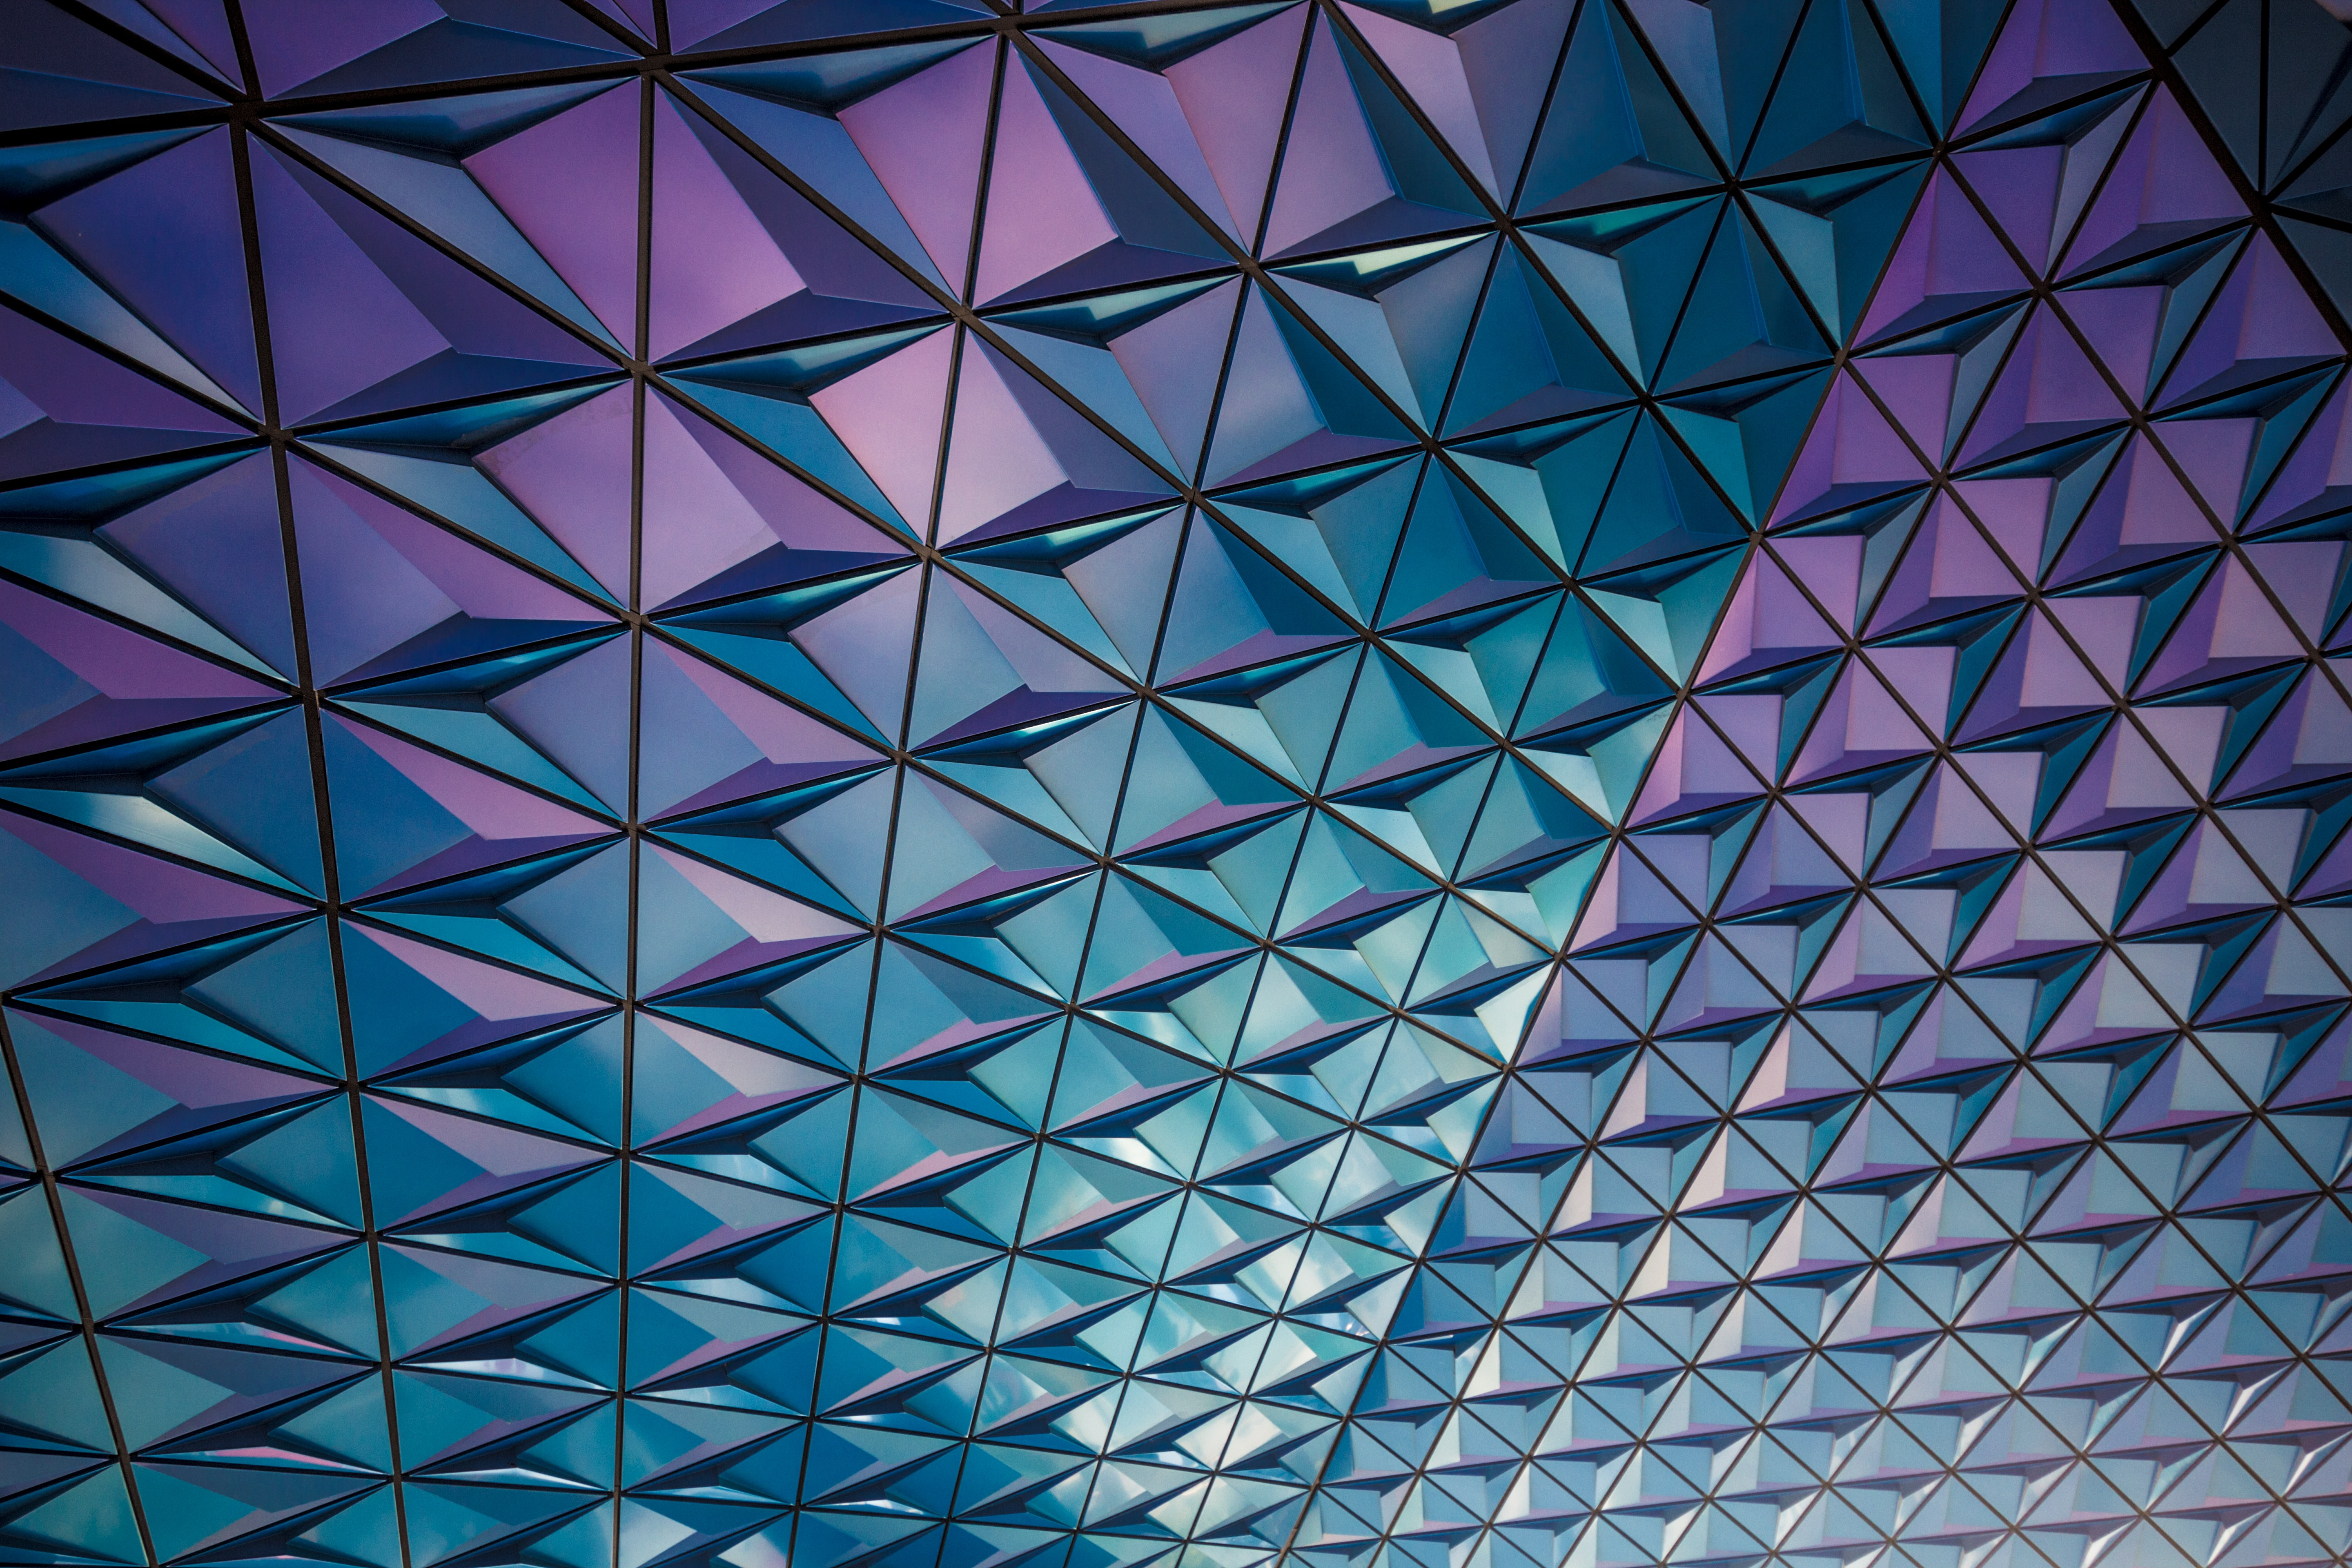 A mosaic of blue and purple triangles in a facade